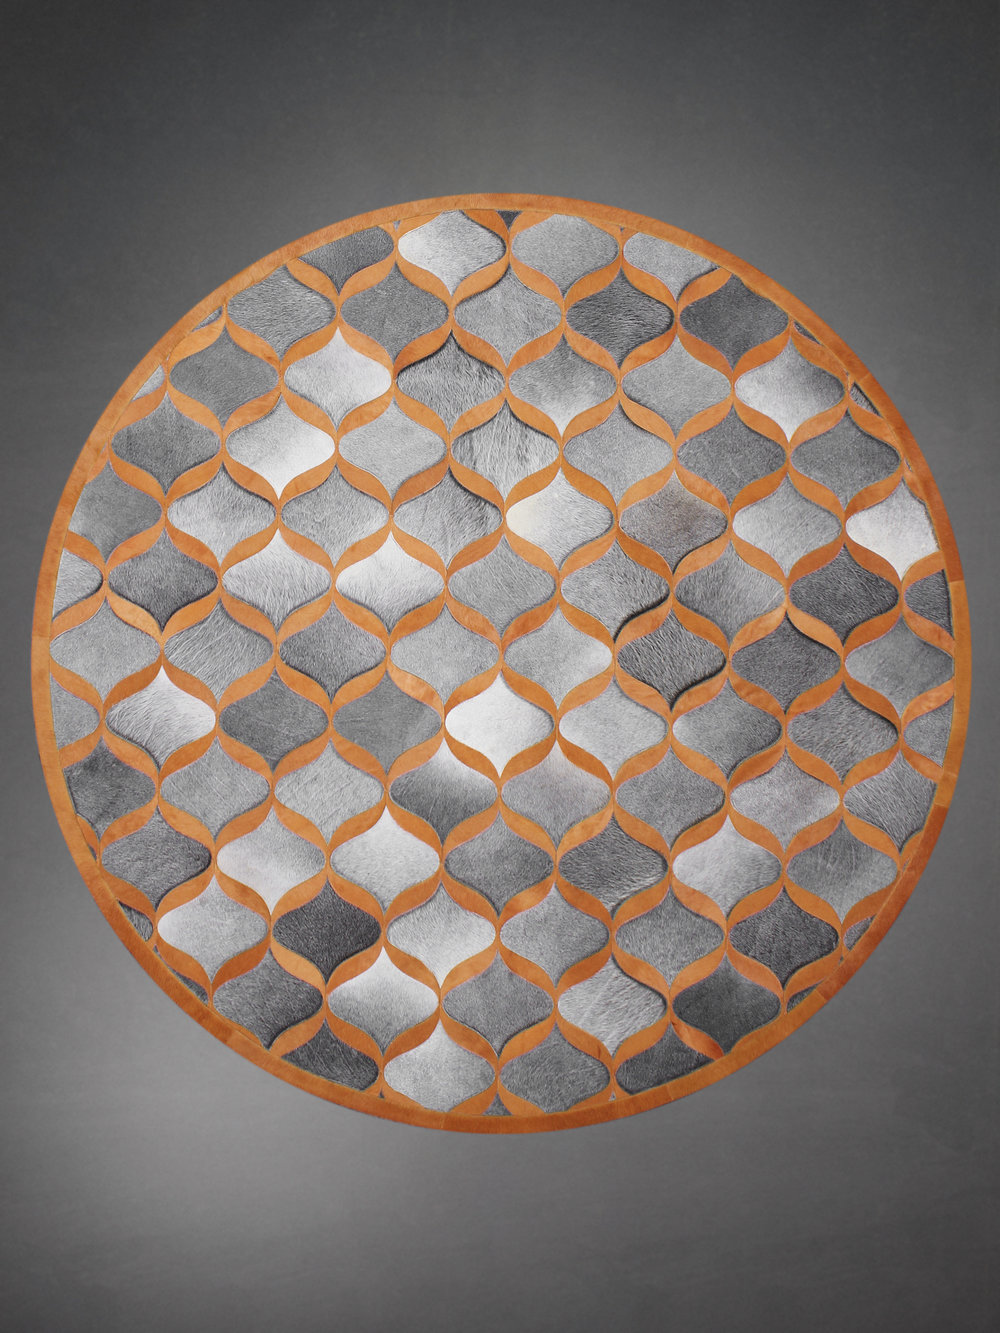 Contemporary designed fur circle rug in a geometric woven pattern in orange and gray.